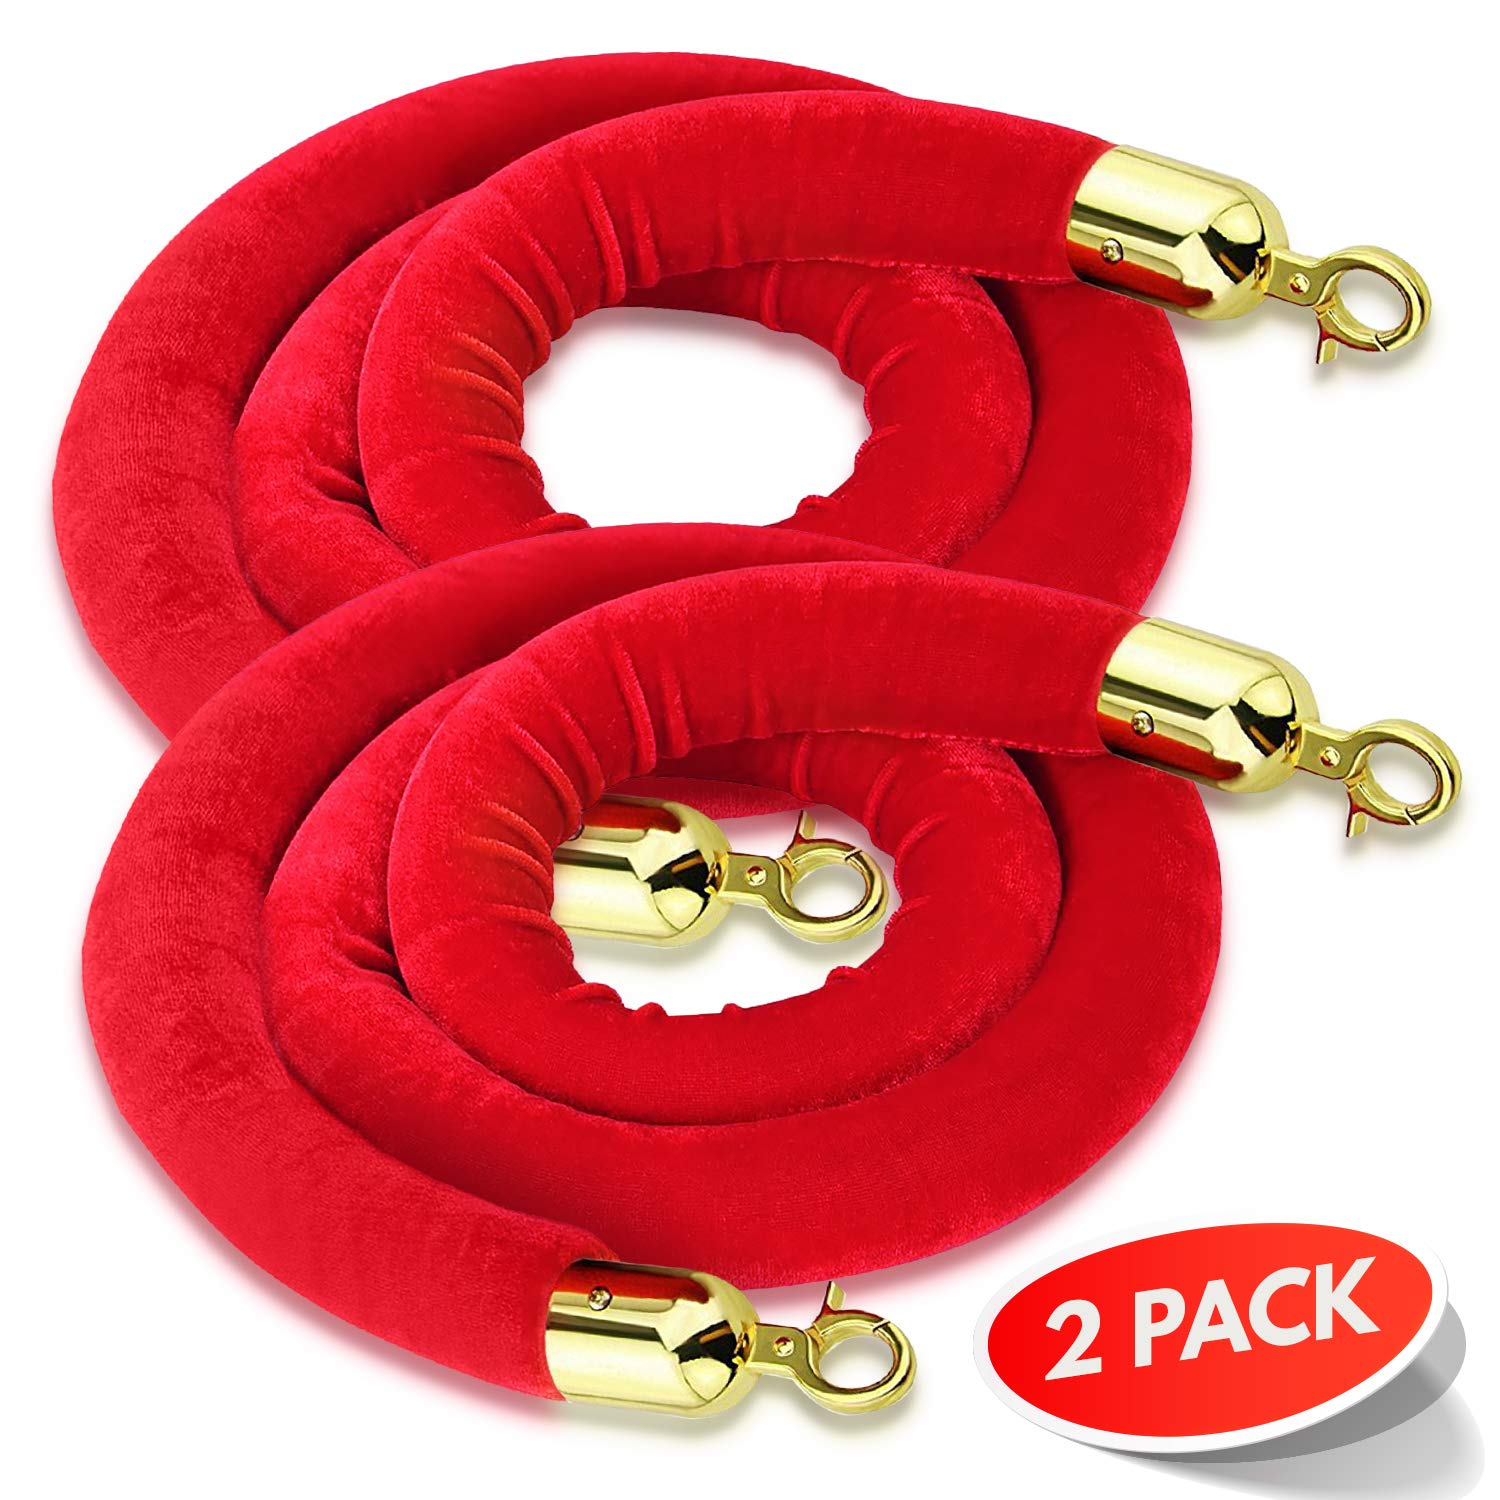 (2-Pack) 5 Feet Red Velvet Rope for a Stanchion Stands Amazing for Crowd Control, Works as a Barrier for a VIP Party Brass Gold Color Plated Hooks by Ray Squad